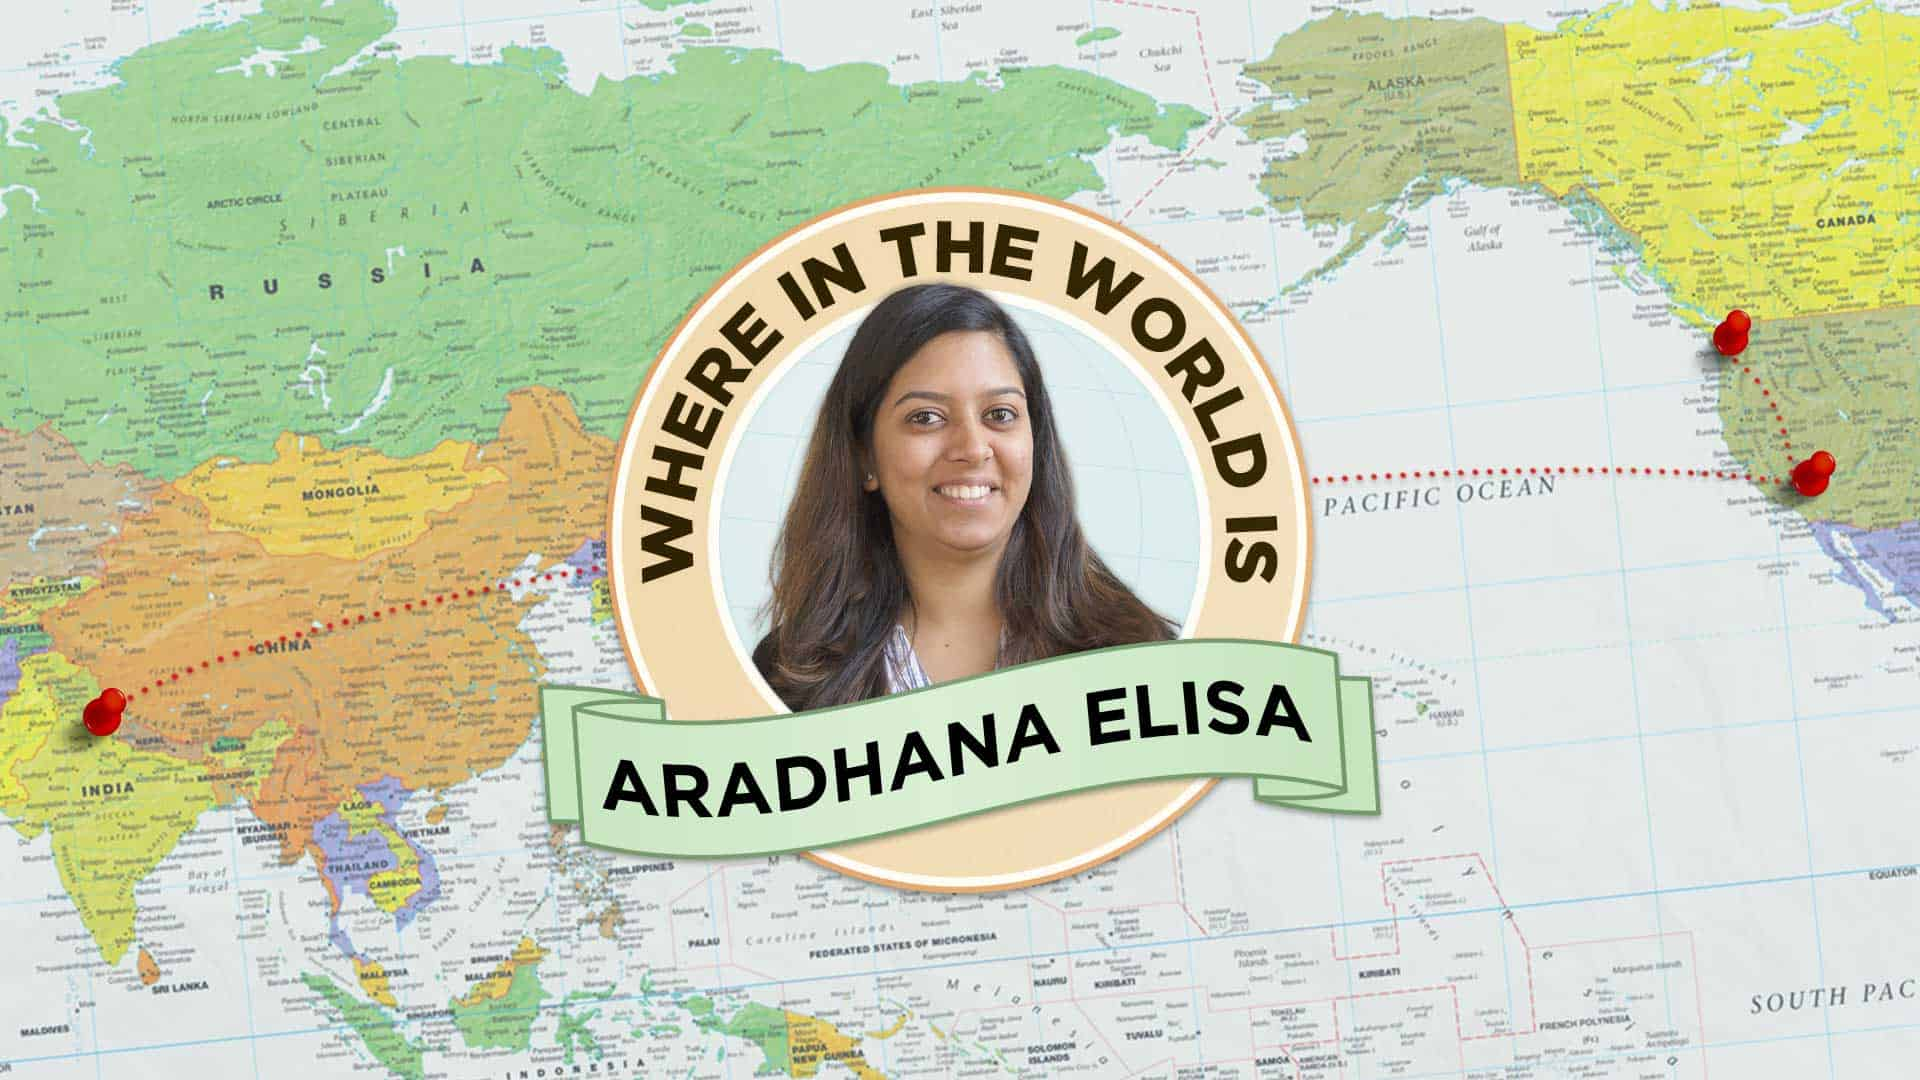 A round (the world) applause for our full-stack developer, Aradhana Elisa